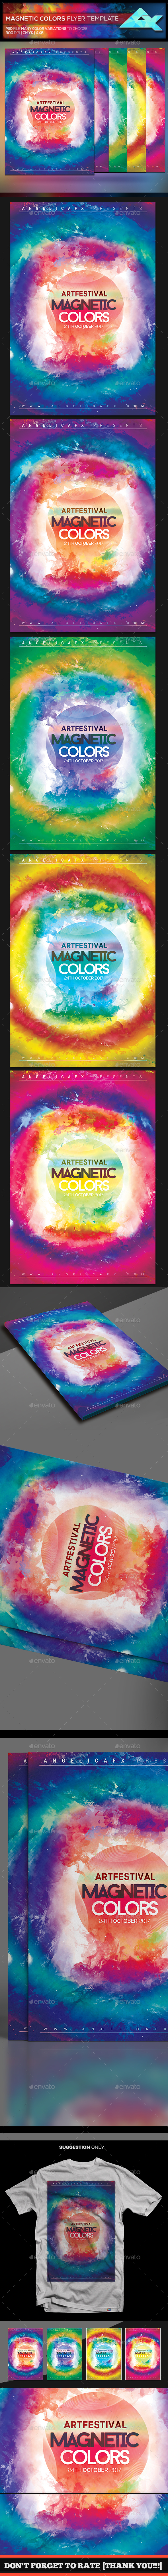 Magnetic Colors Flyer Template - Flyers Print Templates